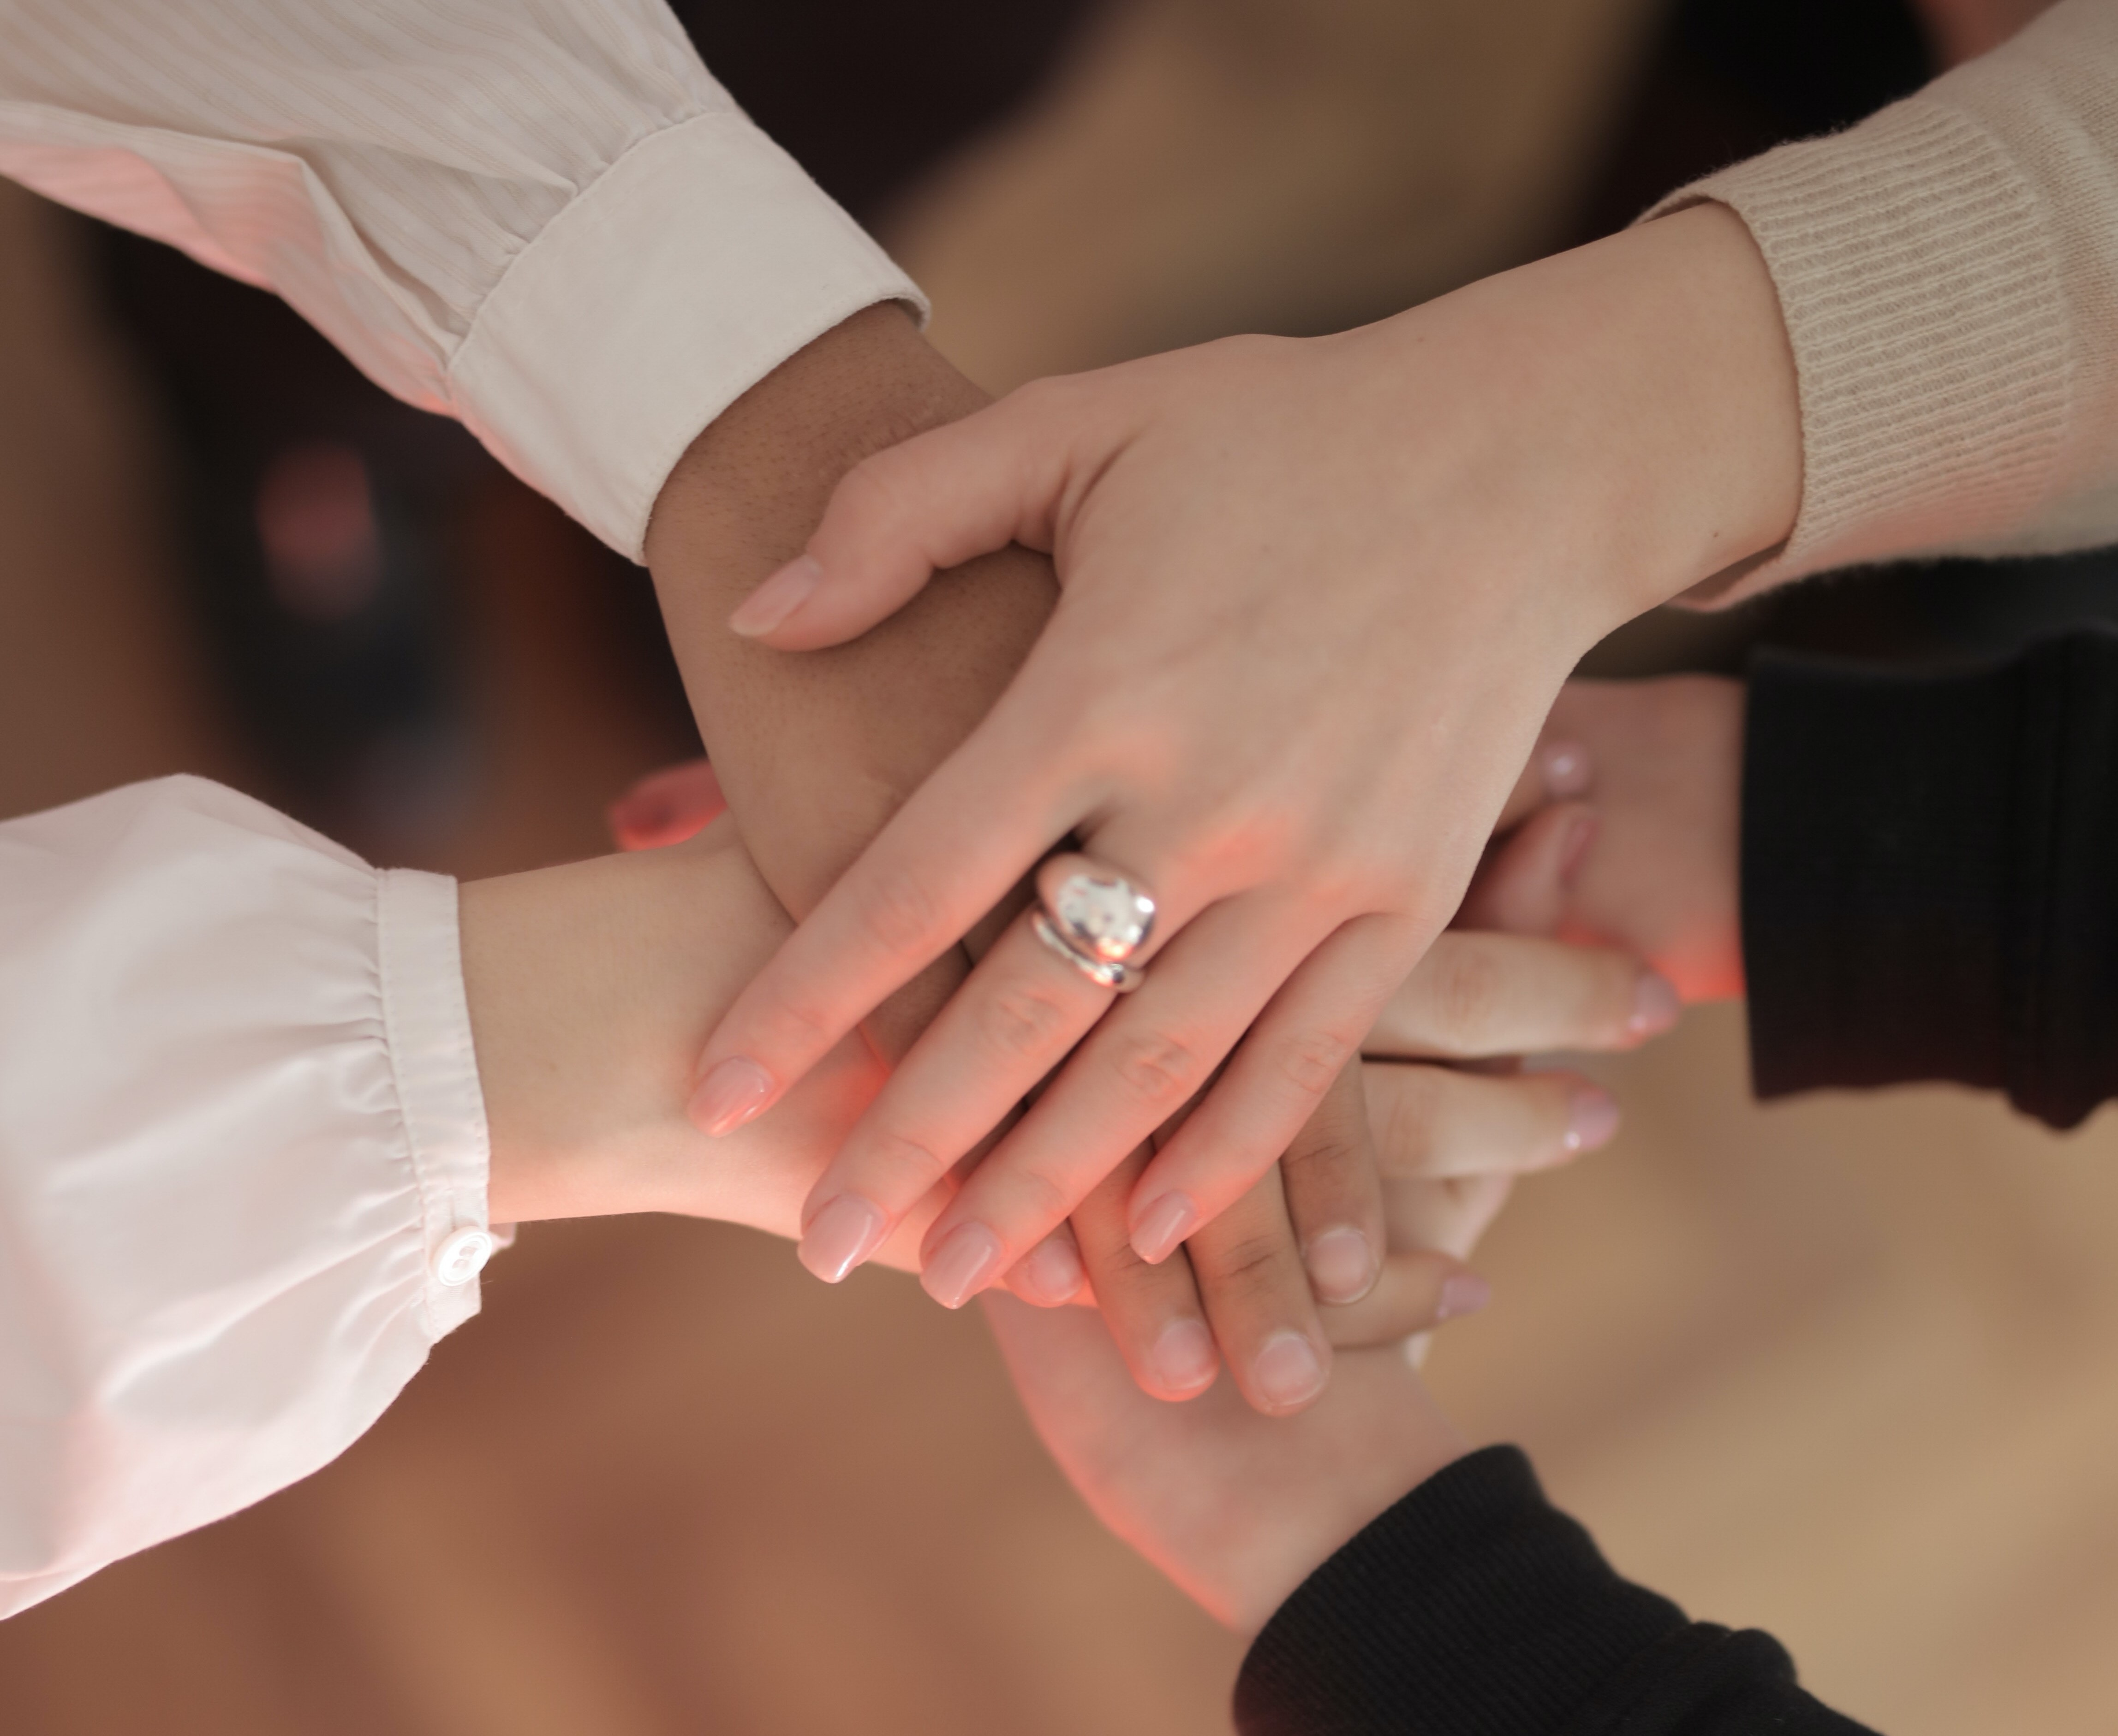 Four hands touching in the middle